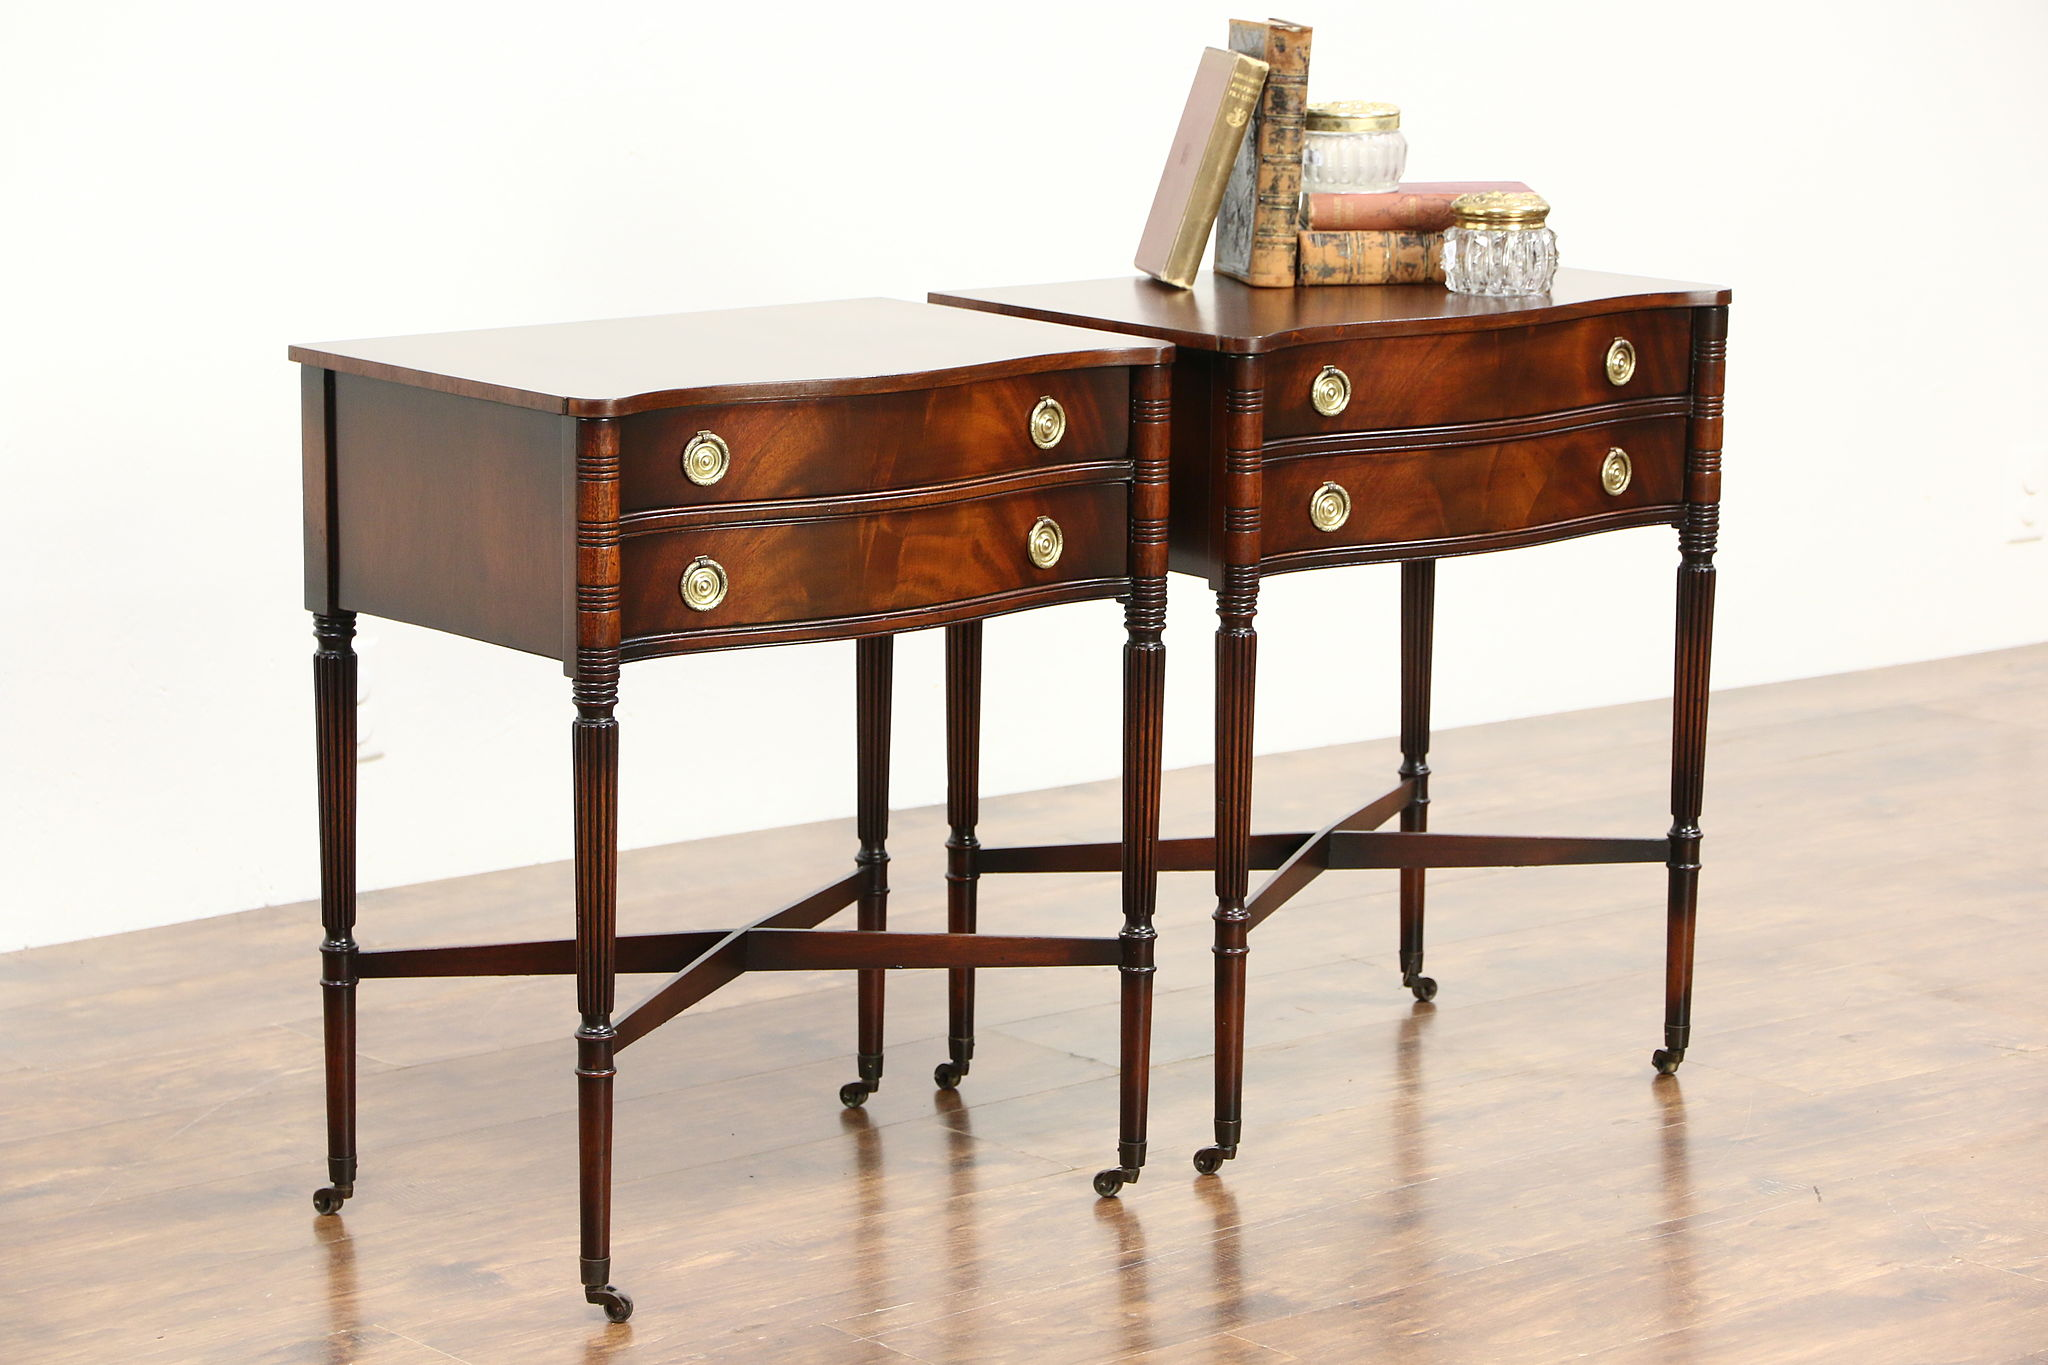 Sold pair of traditional sheraton style mahogany vintage for What is sheraton style furniture